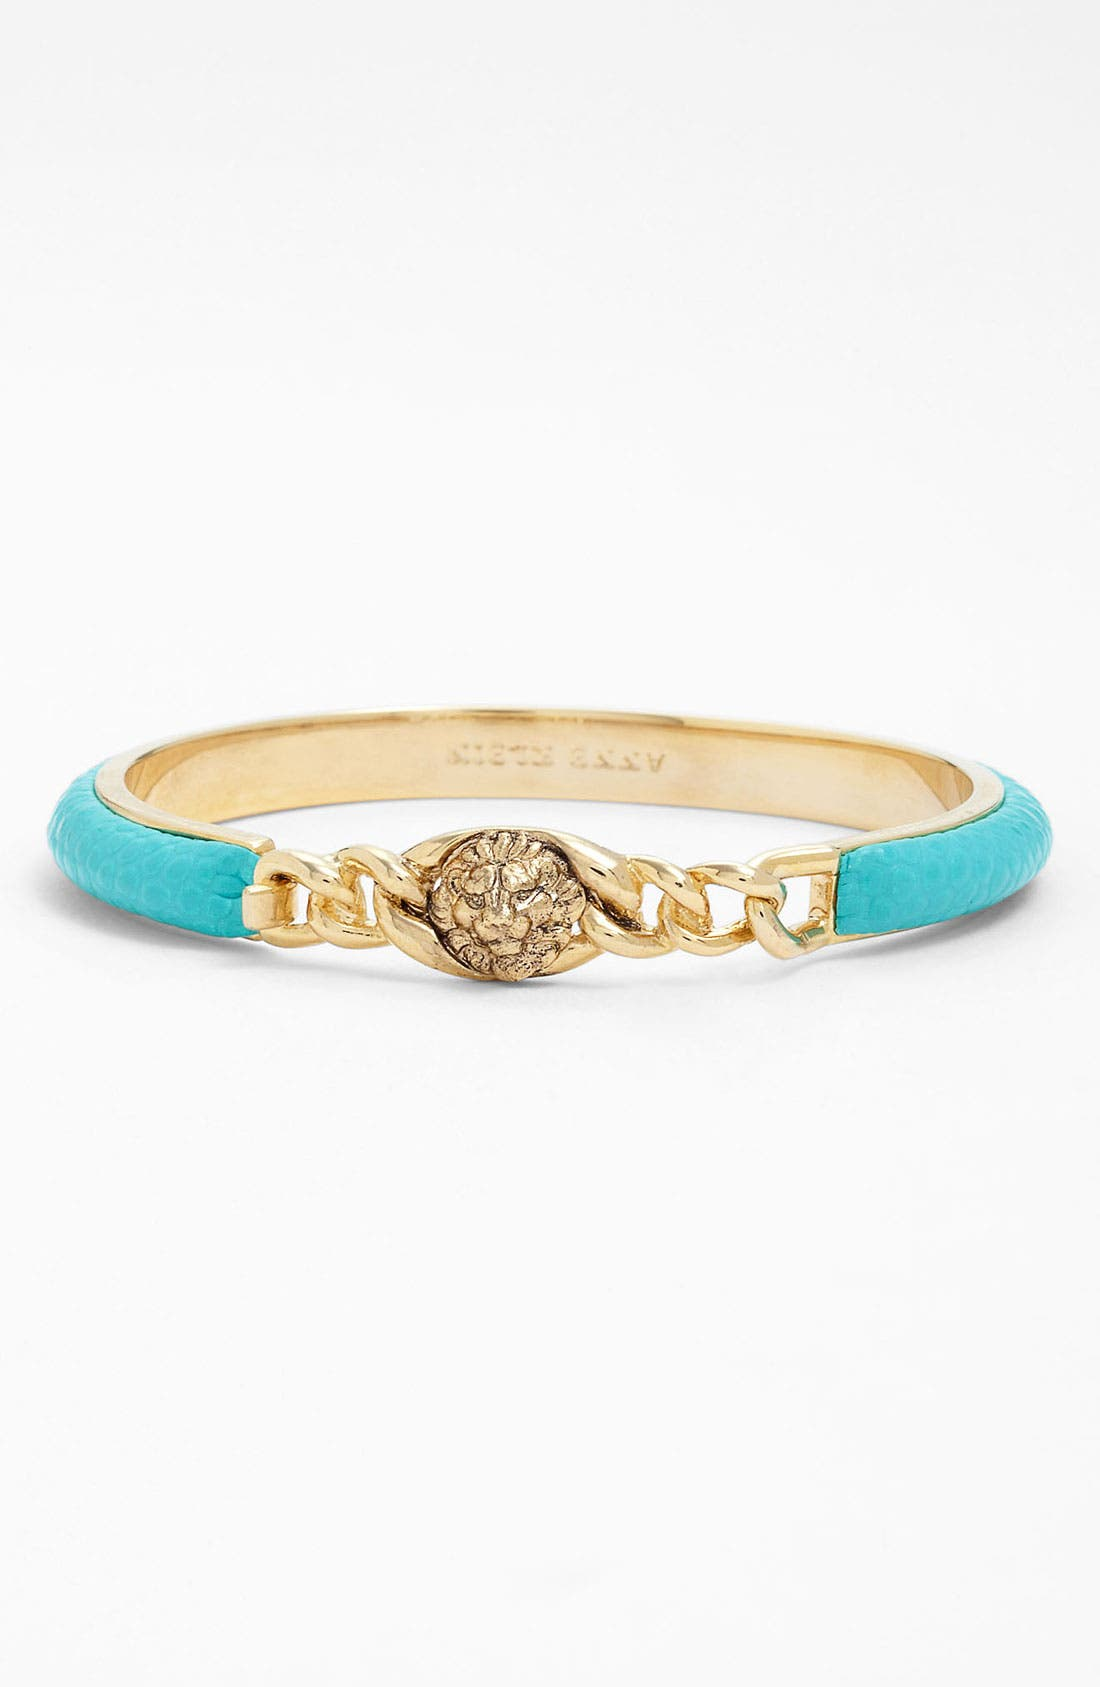 Main Image - Anne Klein 'Wild Side' Thin Leather Lionhead Bangle